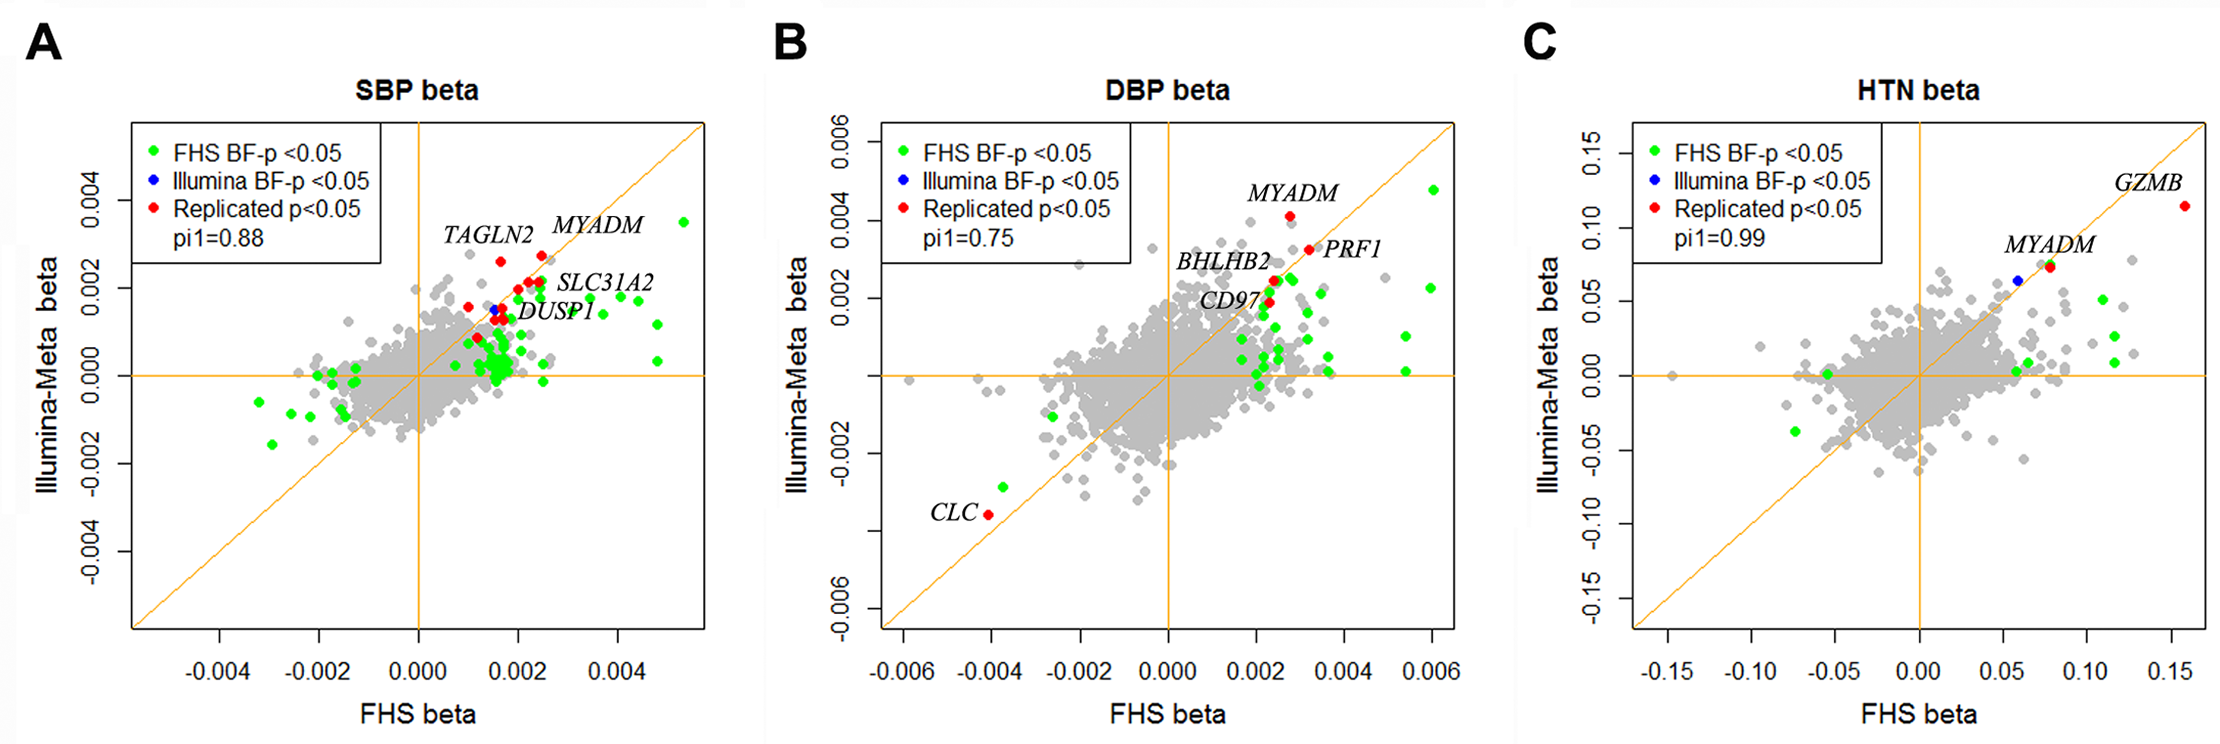 Effect size of differentially expressed BP genes in the Framingham Heart Study and the Illumina cohorts.